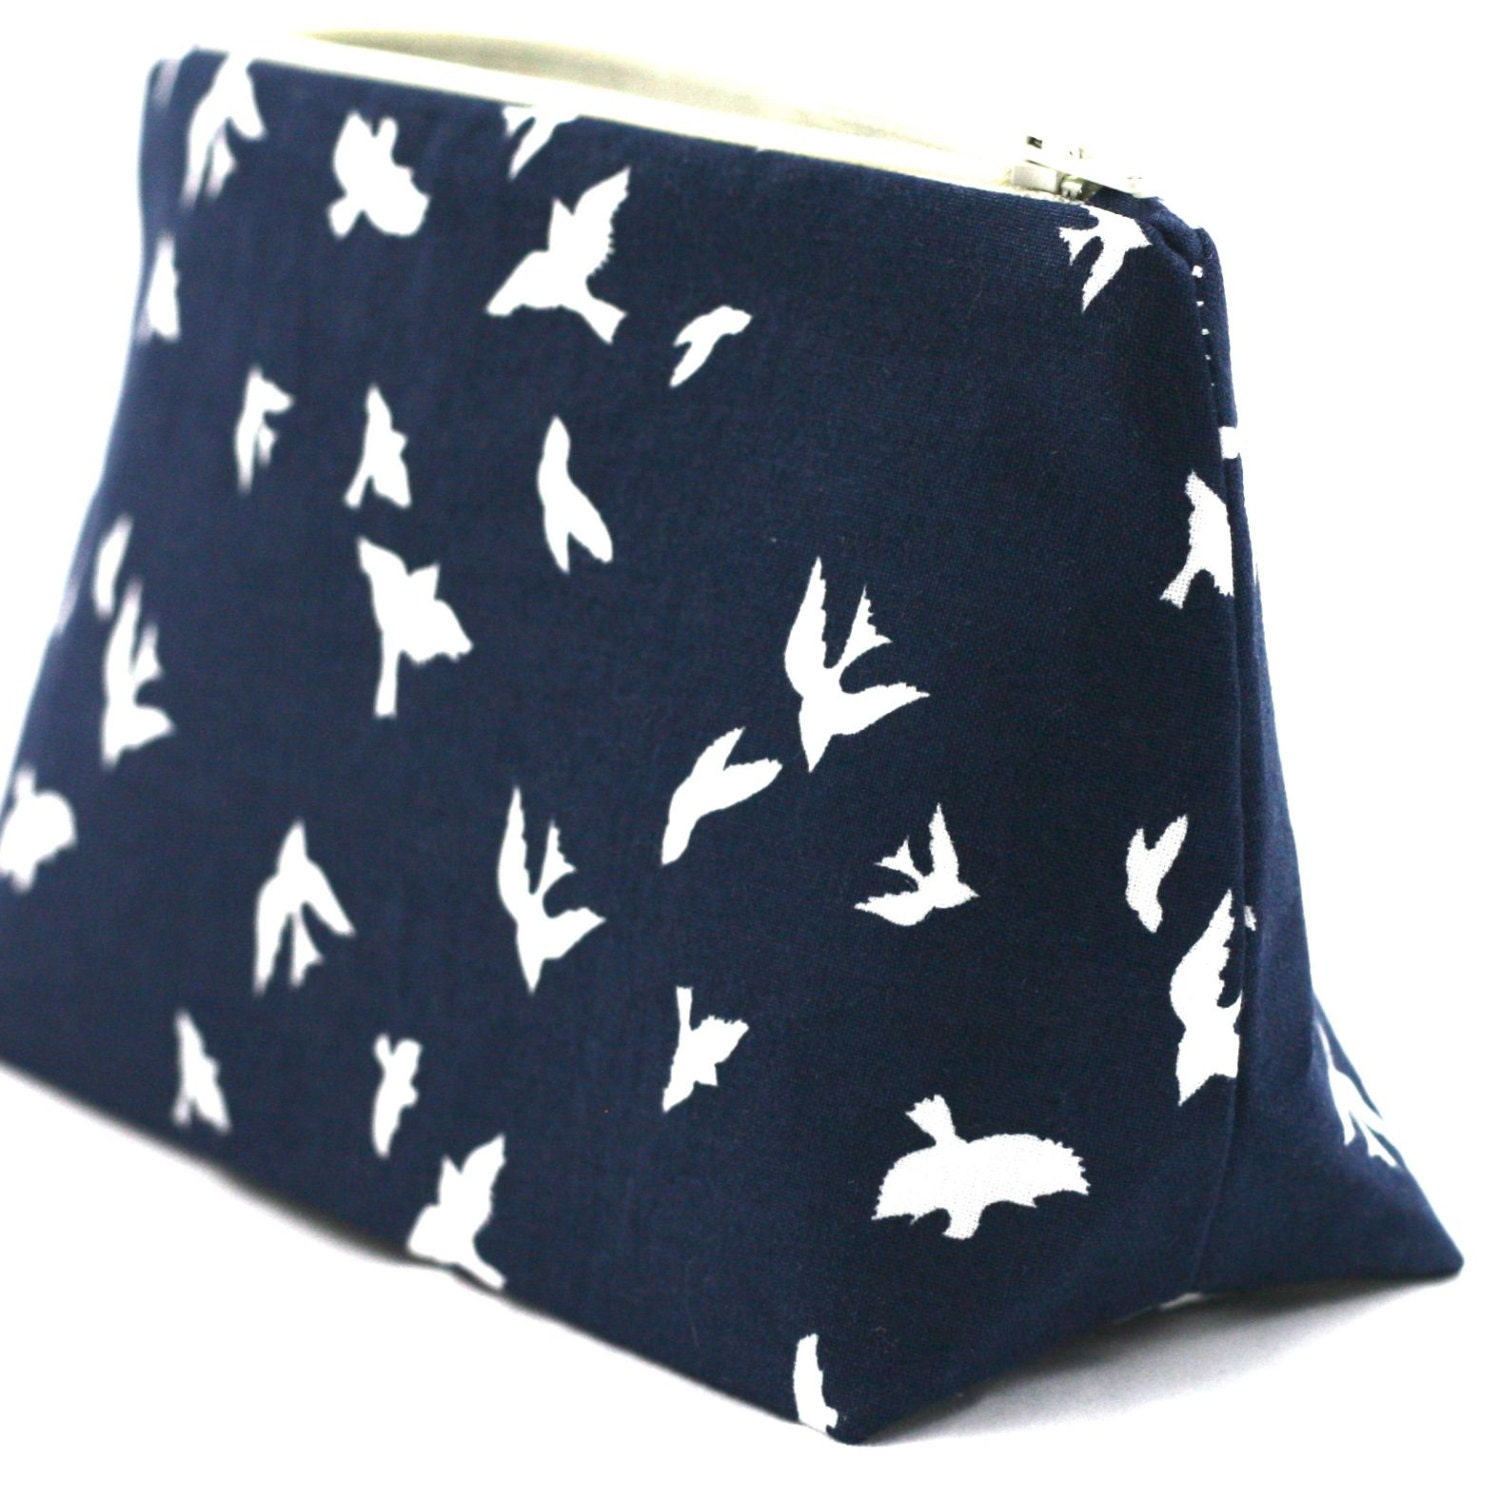 Bird Makeup Bag Navy Blue In Flight Print Handmade in USA: Pencil ...